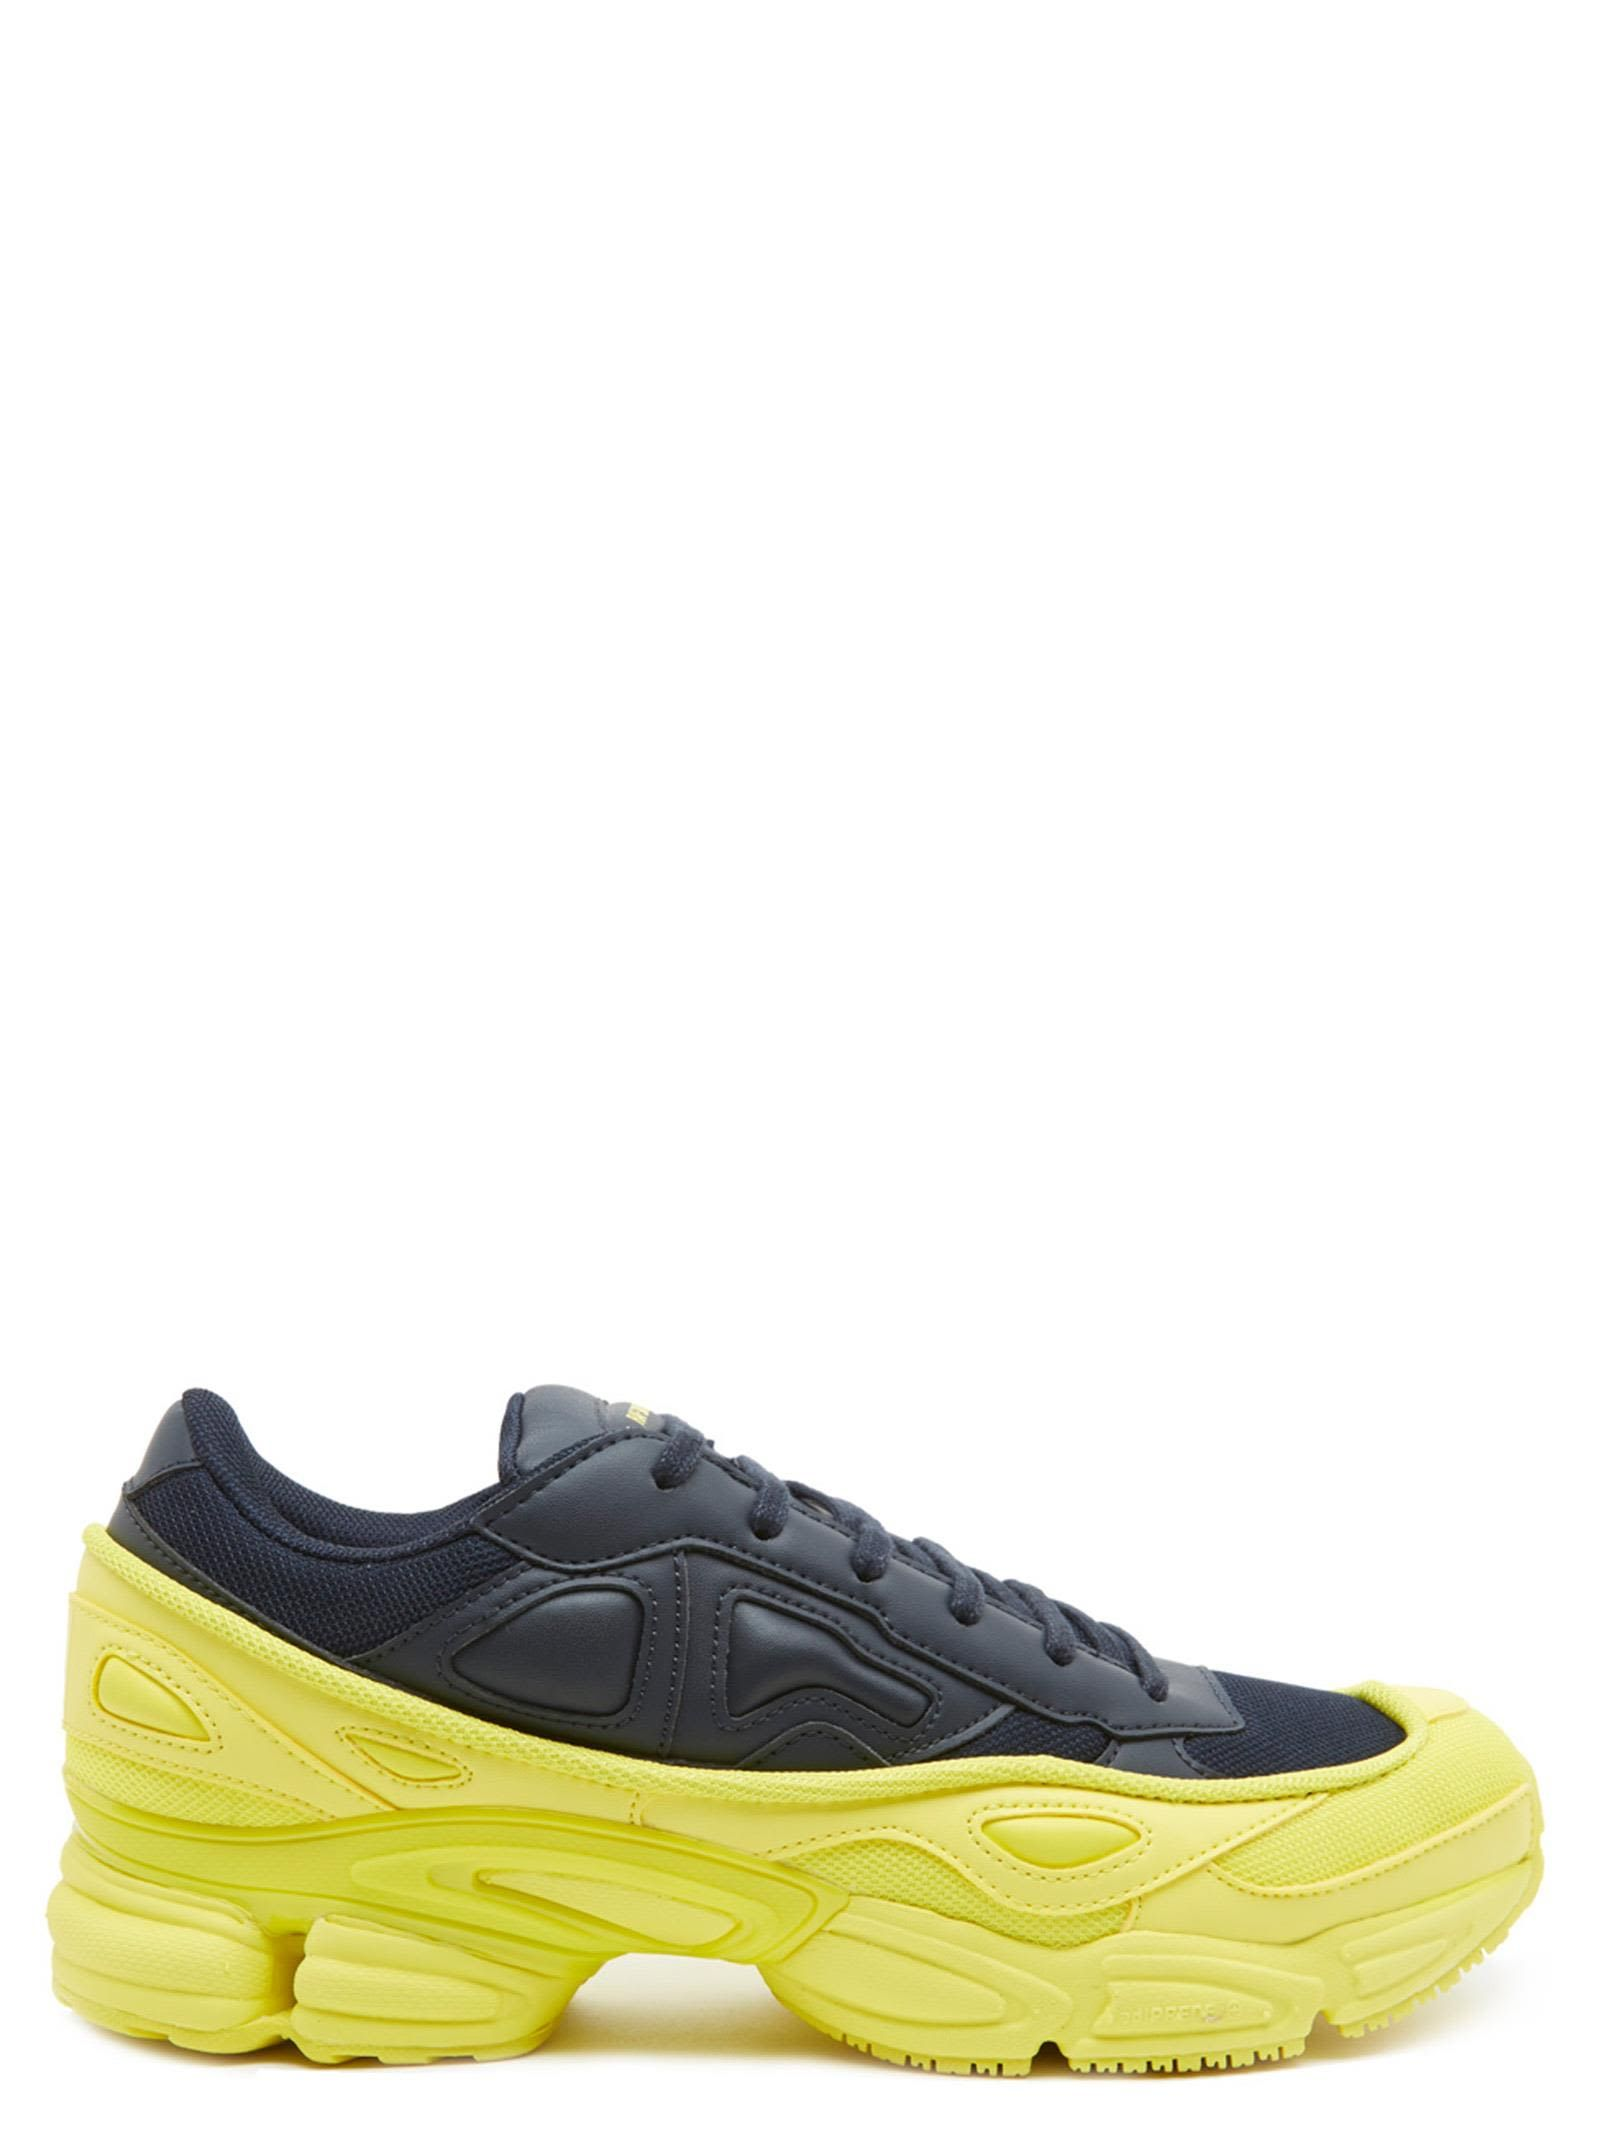 37c376a6bae ADIDAS BY RAF SIMONS  OZWEEGO  SHOES.  adidasbyrafsimons  shoes ...